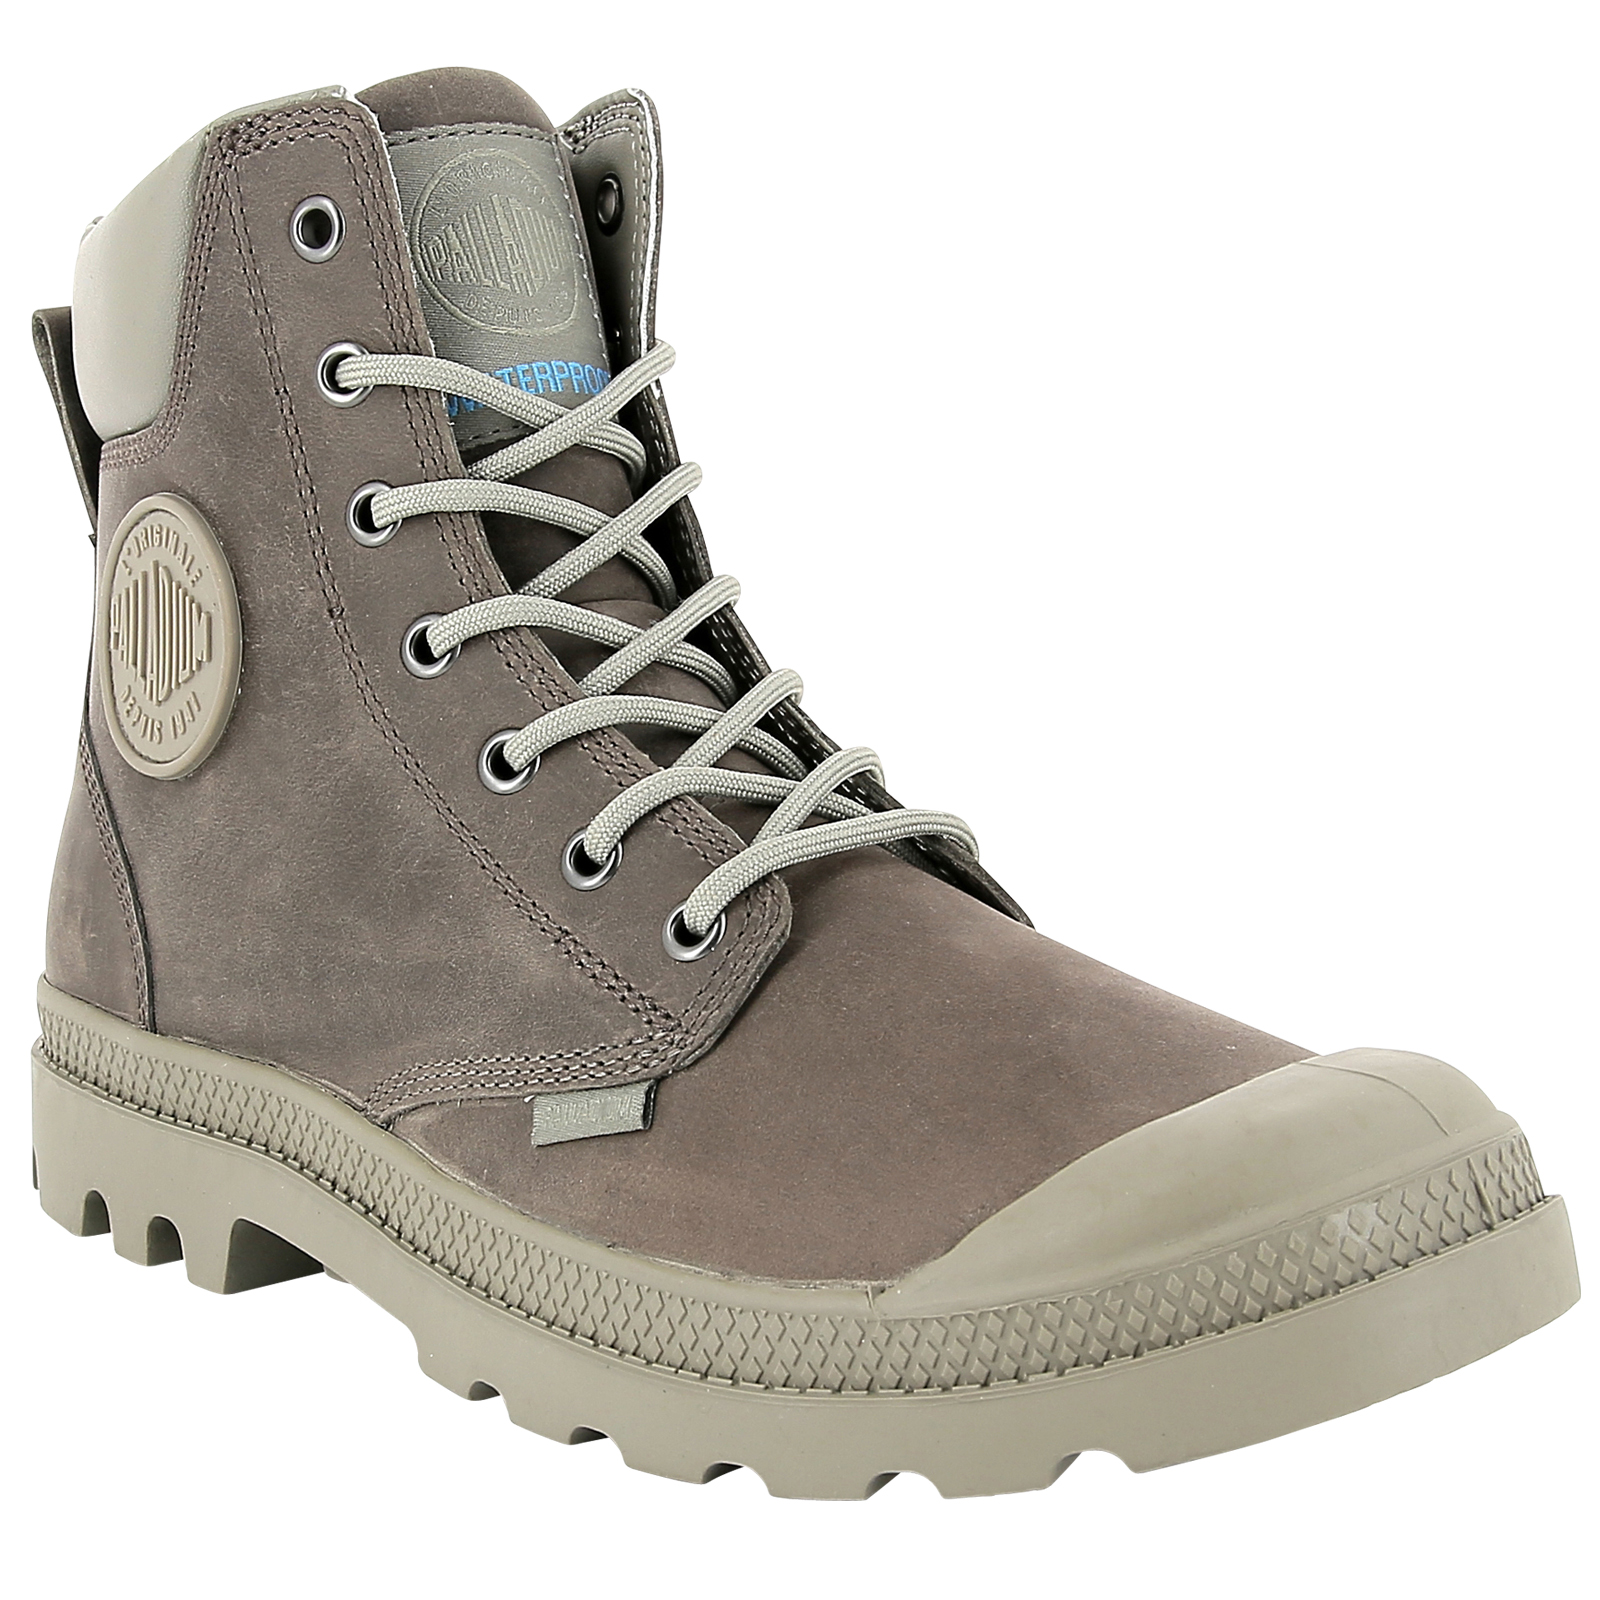 Palladium-Mens-Pampa-Cuff-Lux-Designer-Waterproof-Leather-Walking-Boots-Shoes thumbnail 18